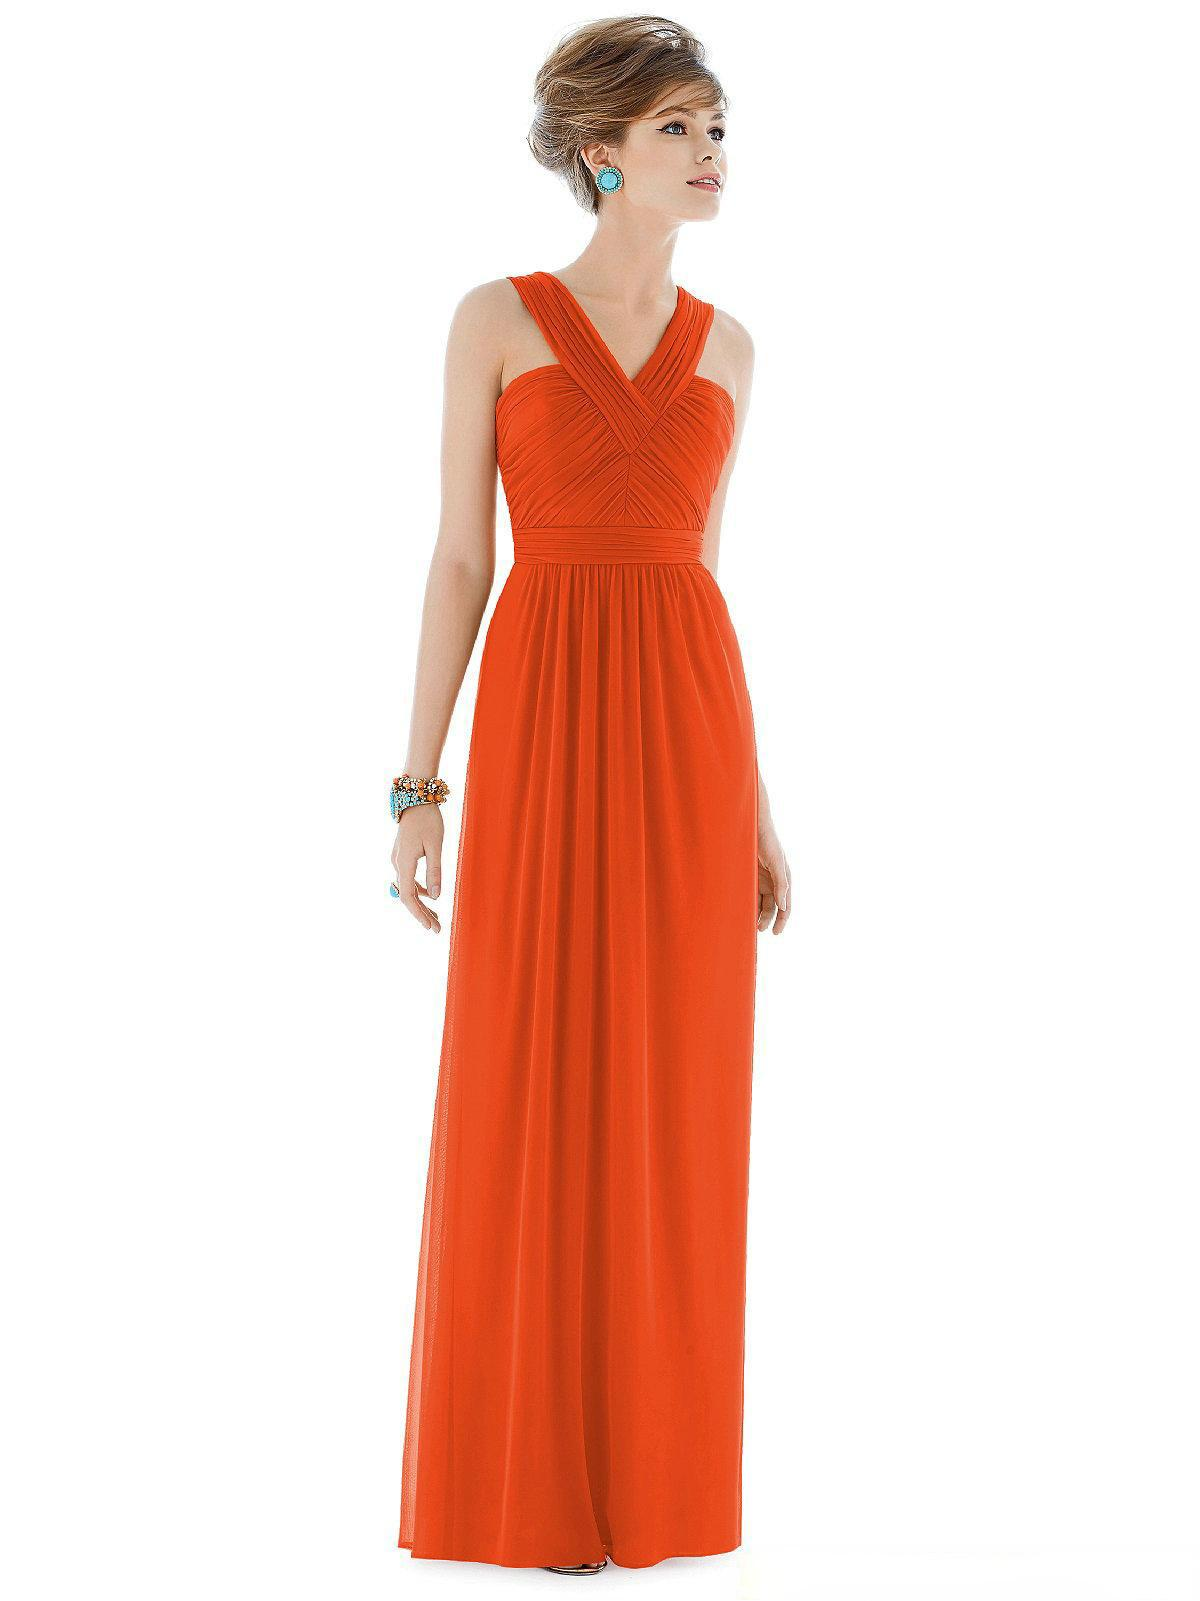 Alfred sung tangerine tango bridesmaids dresses 2015 plus size alfred sung tangerine tango bridesmaids dresses 2015 plus size cheap halter chiffon orange long backless formal party prom gowns dessy d678 burnt orange ombrellifo Image collections